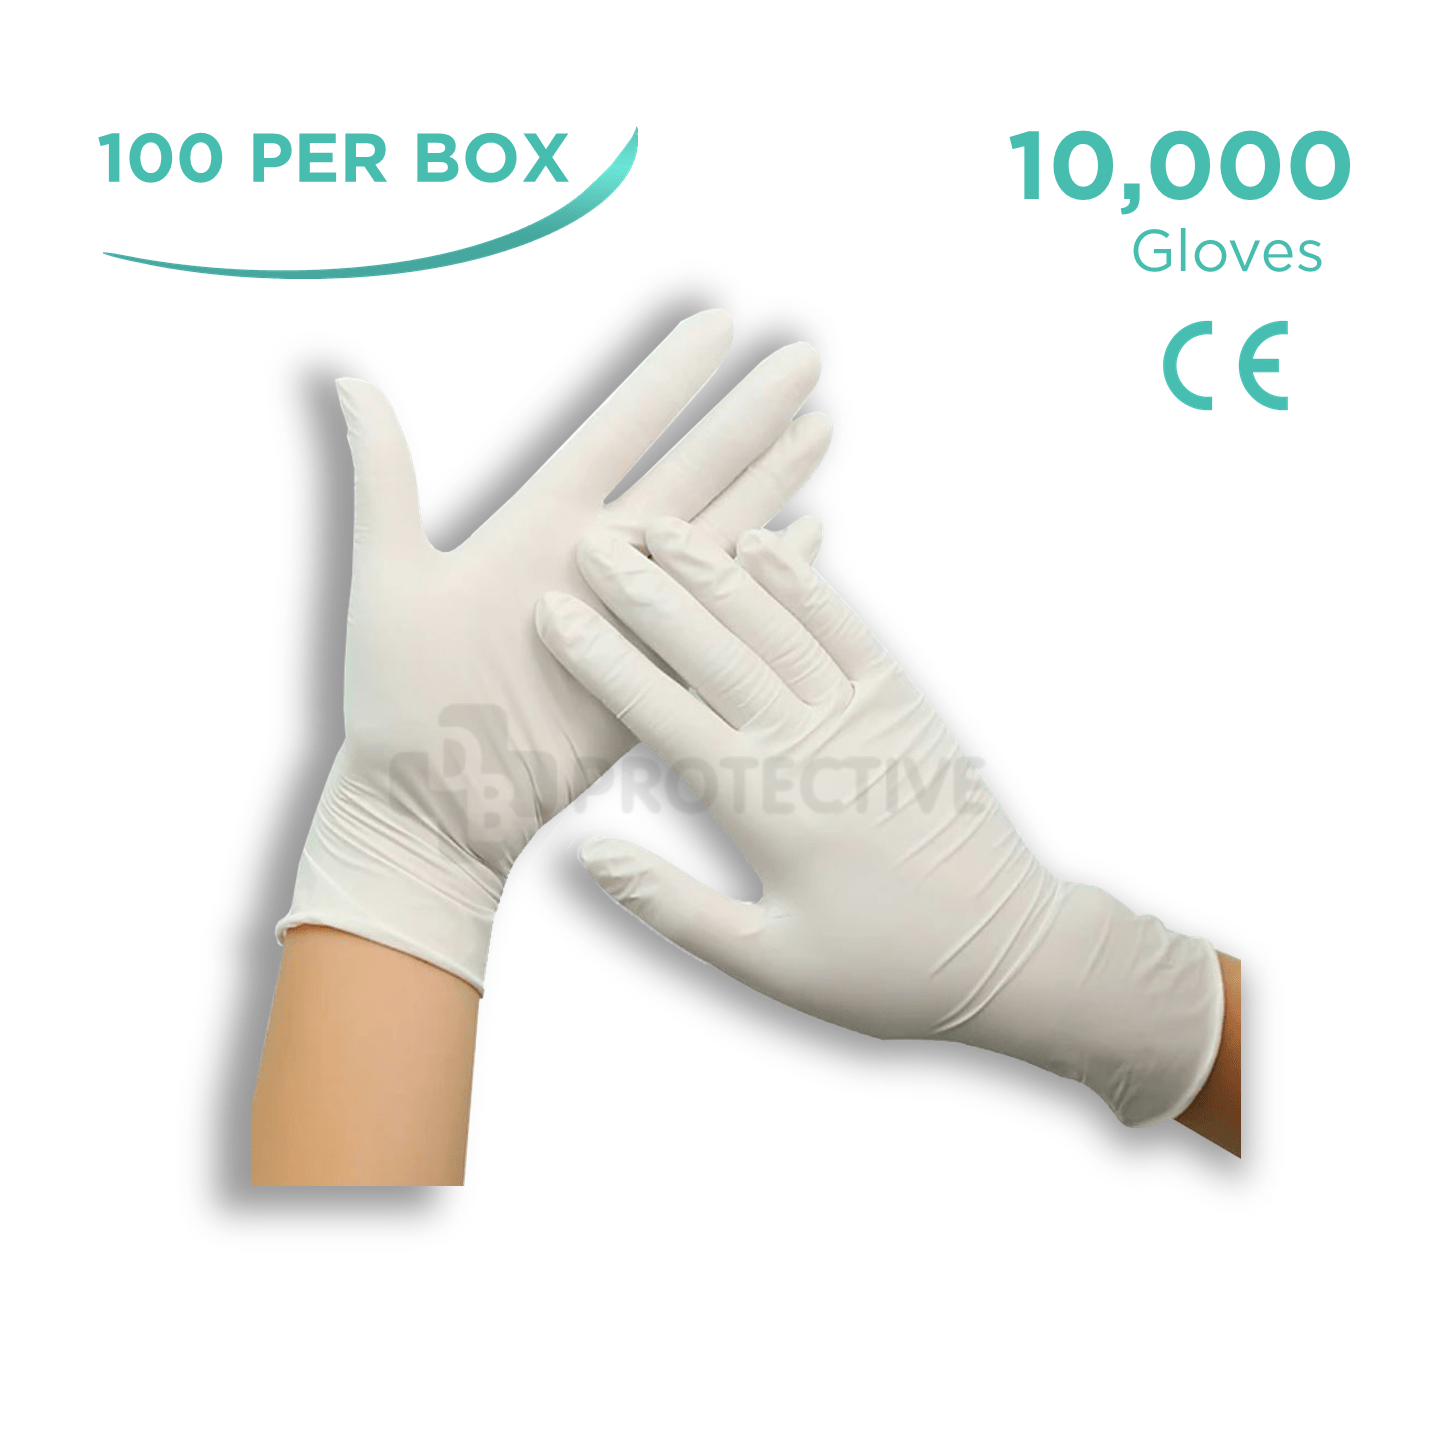 Latex Gloves - Pack of 10,000. - USA Medical Supply - DB Protective